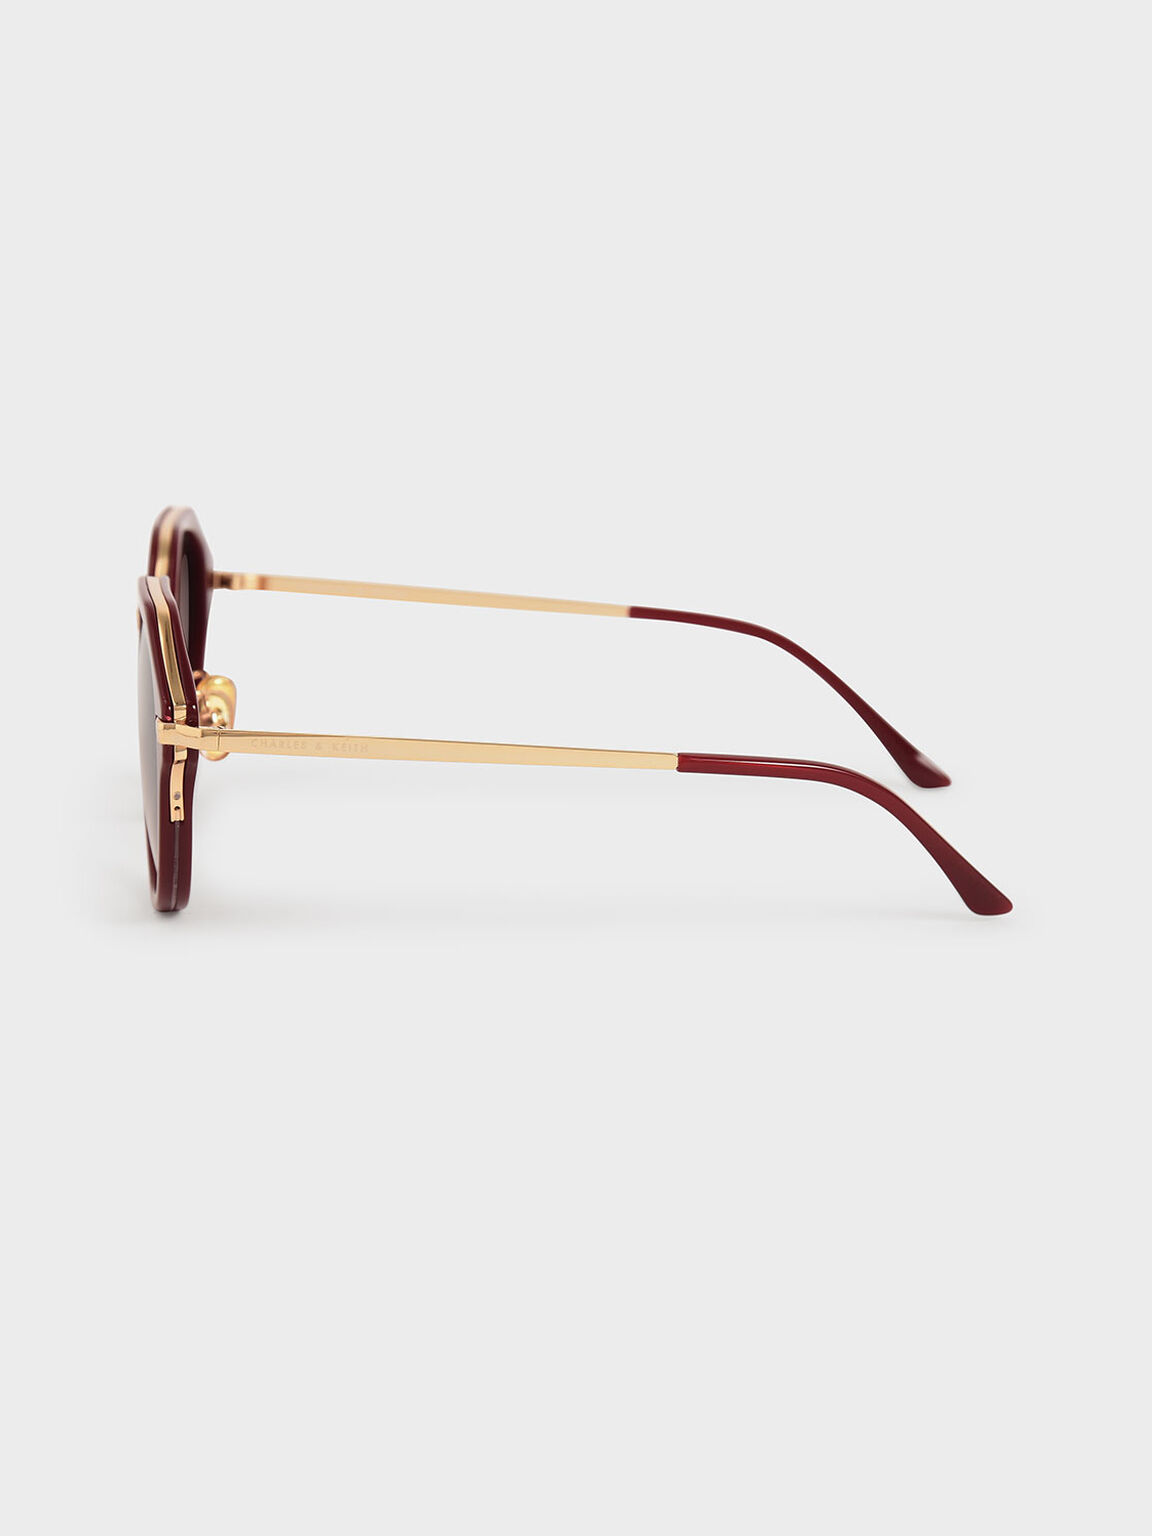 Geometric Sunglasses, Burgundy, hi-res